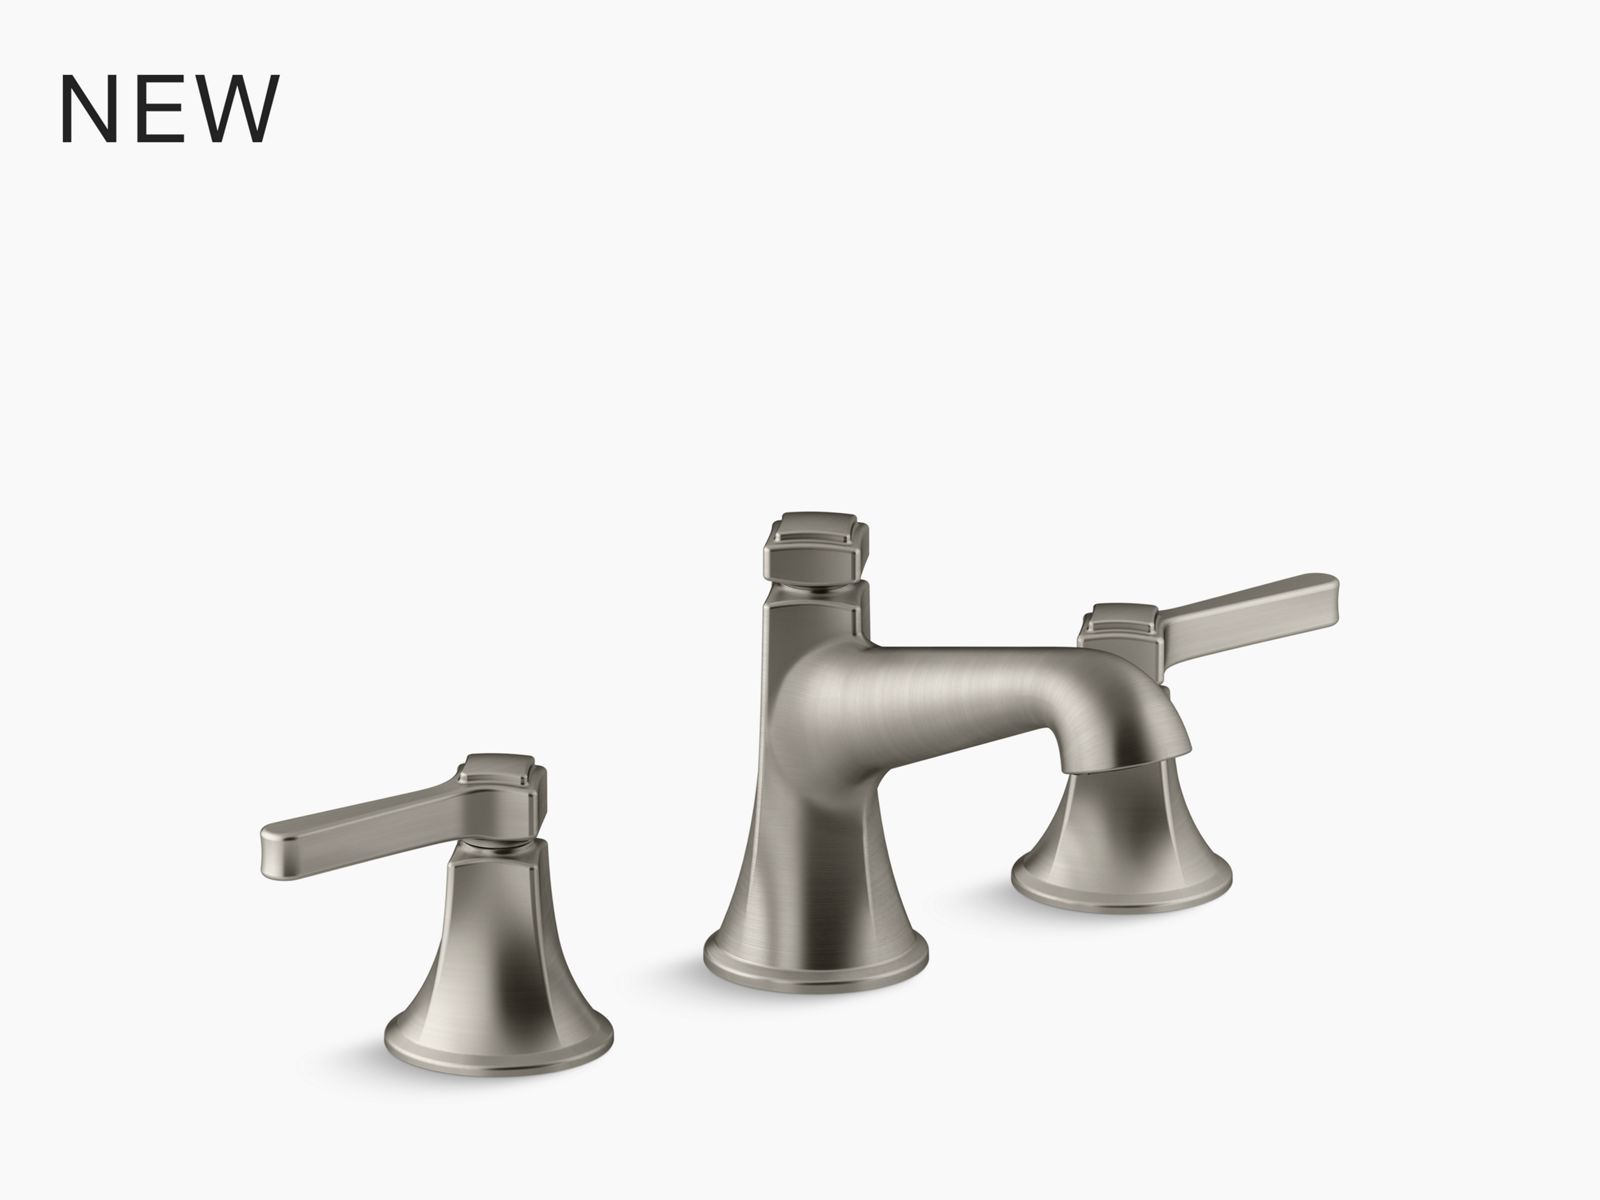 purist two hole deck mount bridge kitchen sink faucet with 8 3 8 spout and matching finish sidespray